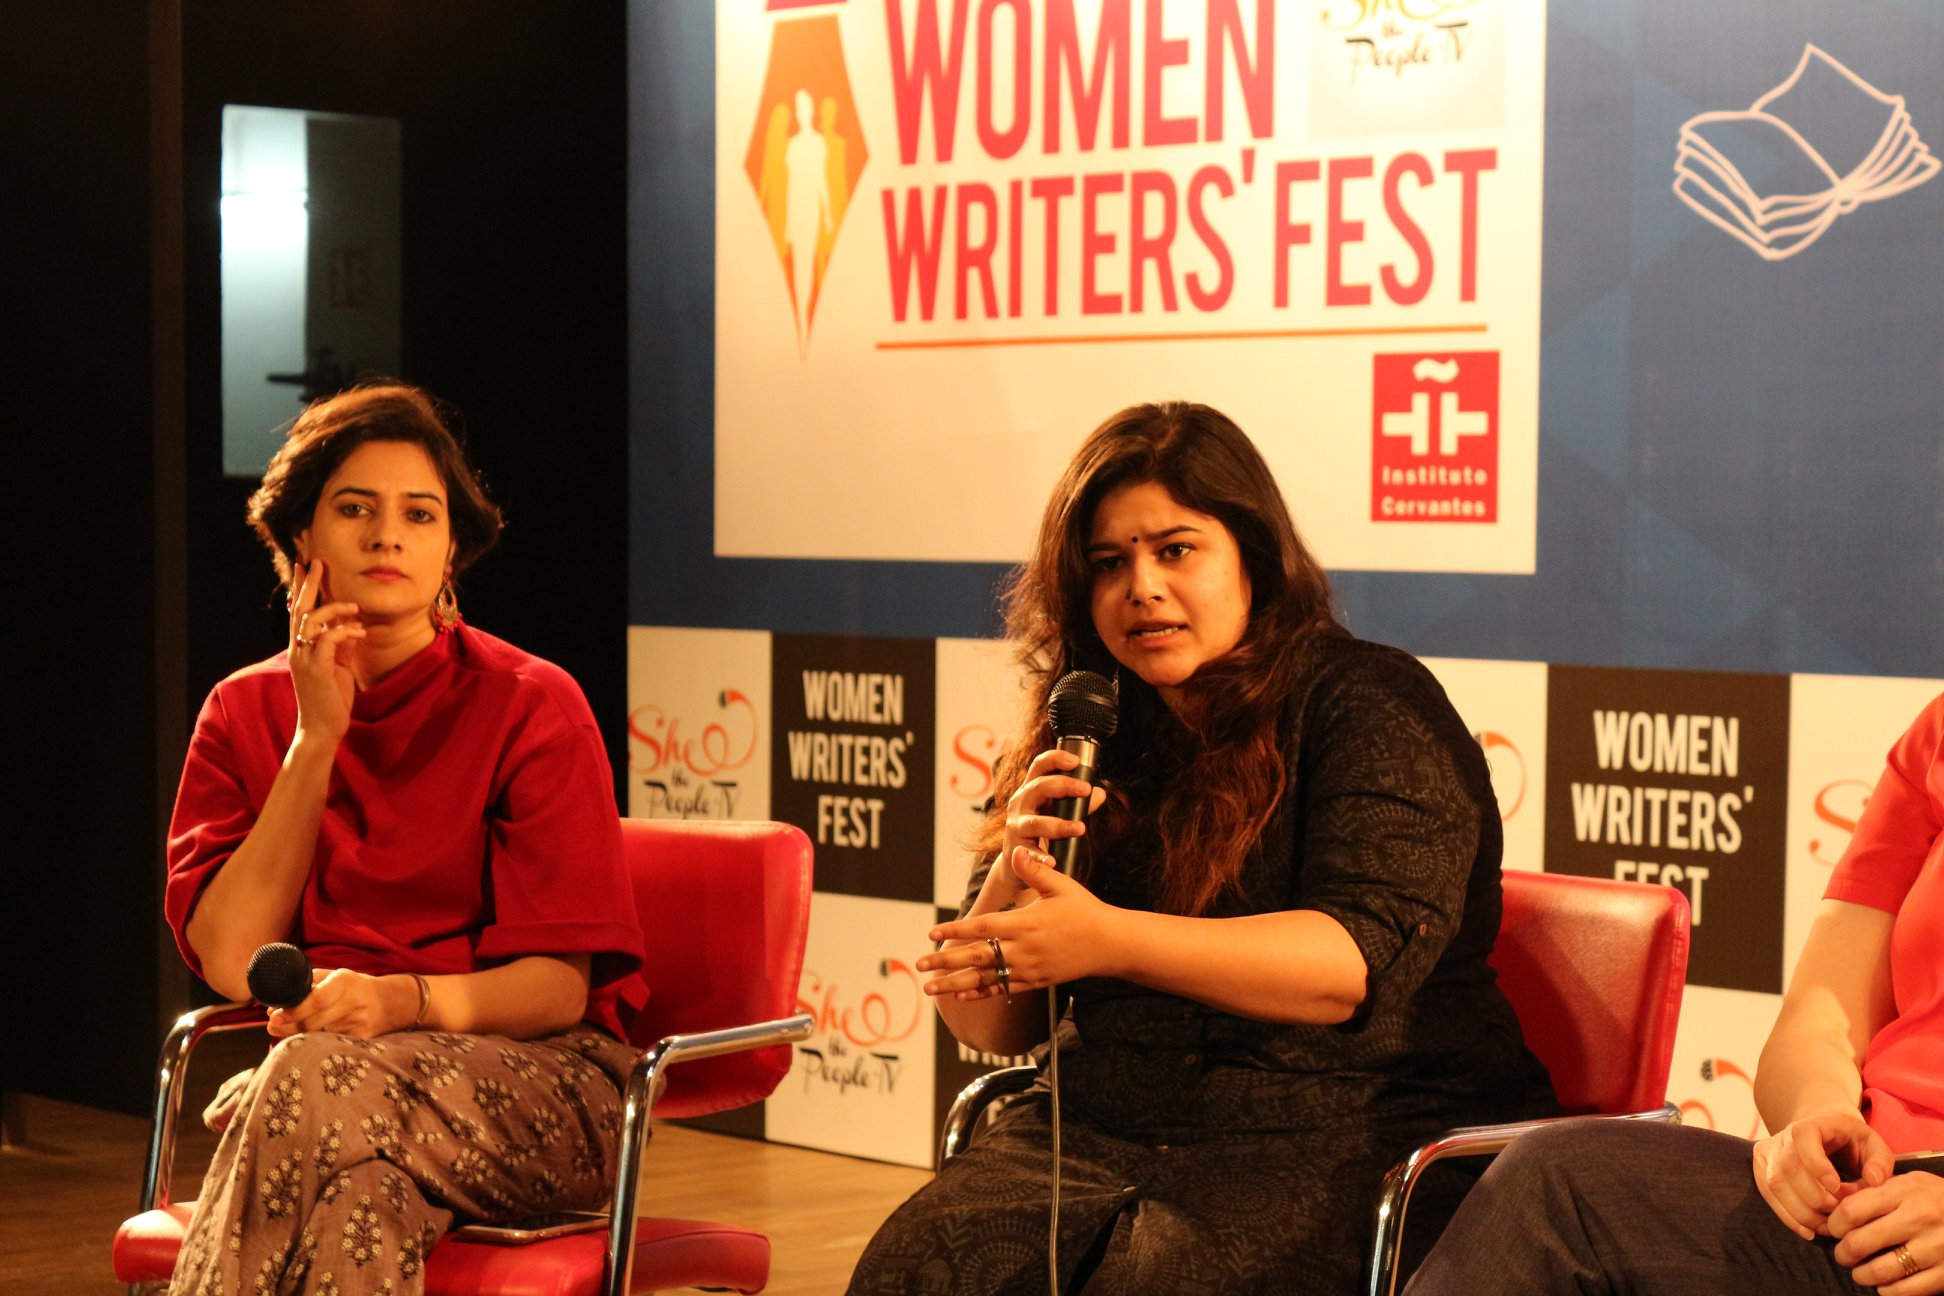 Shaili Chopra (left) and Karnika Kohli